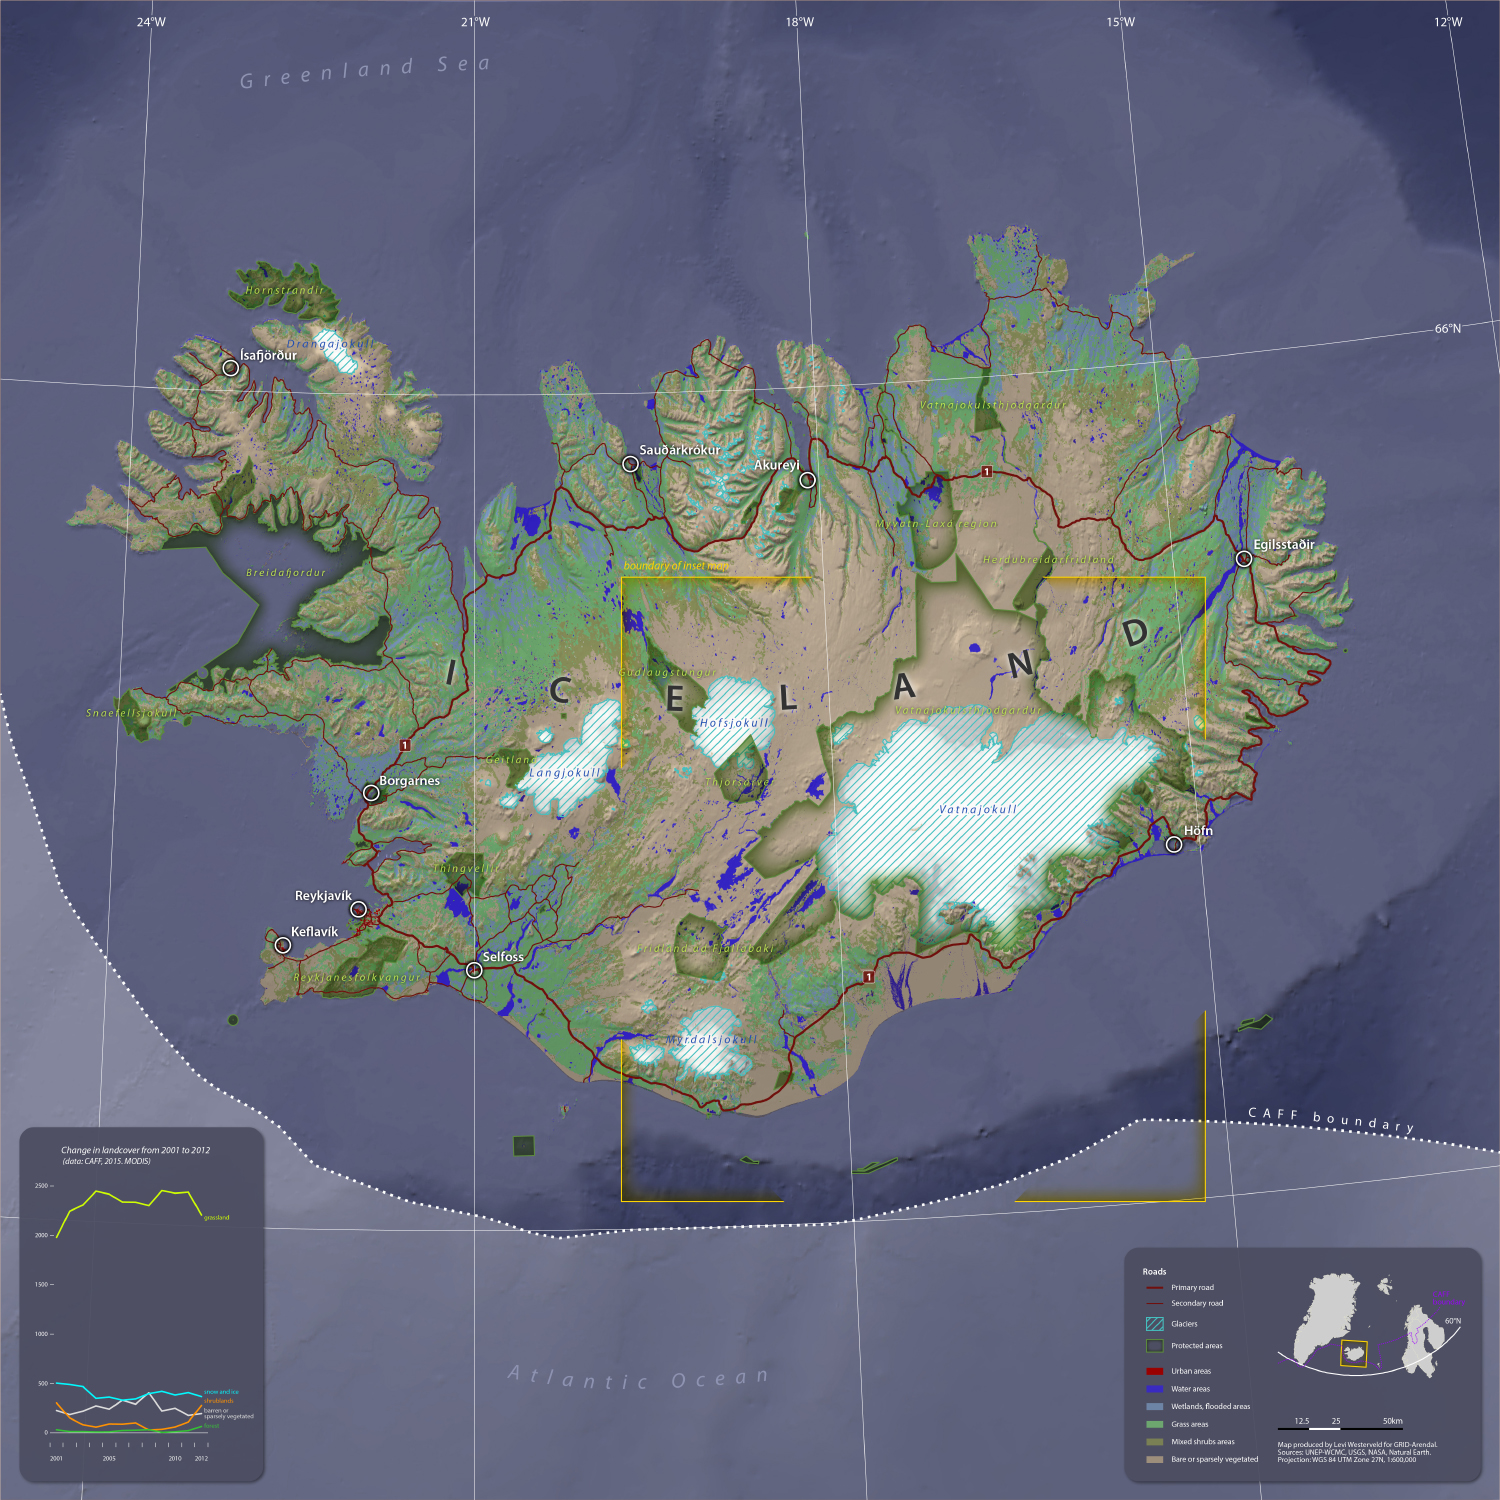 Iceland Land Cover.     Produced for GRID-Arendal, AMAP, CAFF and the 2018 Arctic Biodiversity Congress. (2018).